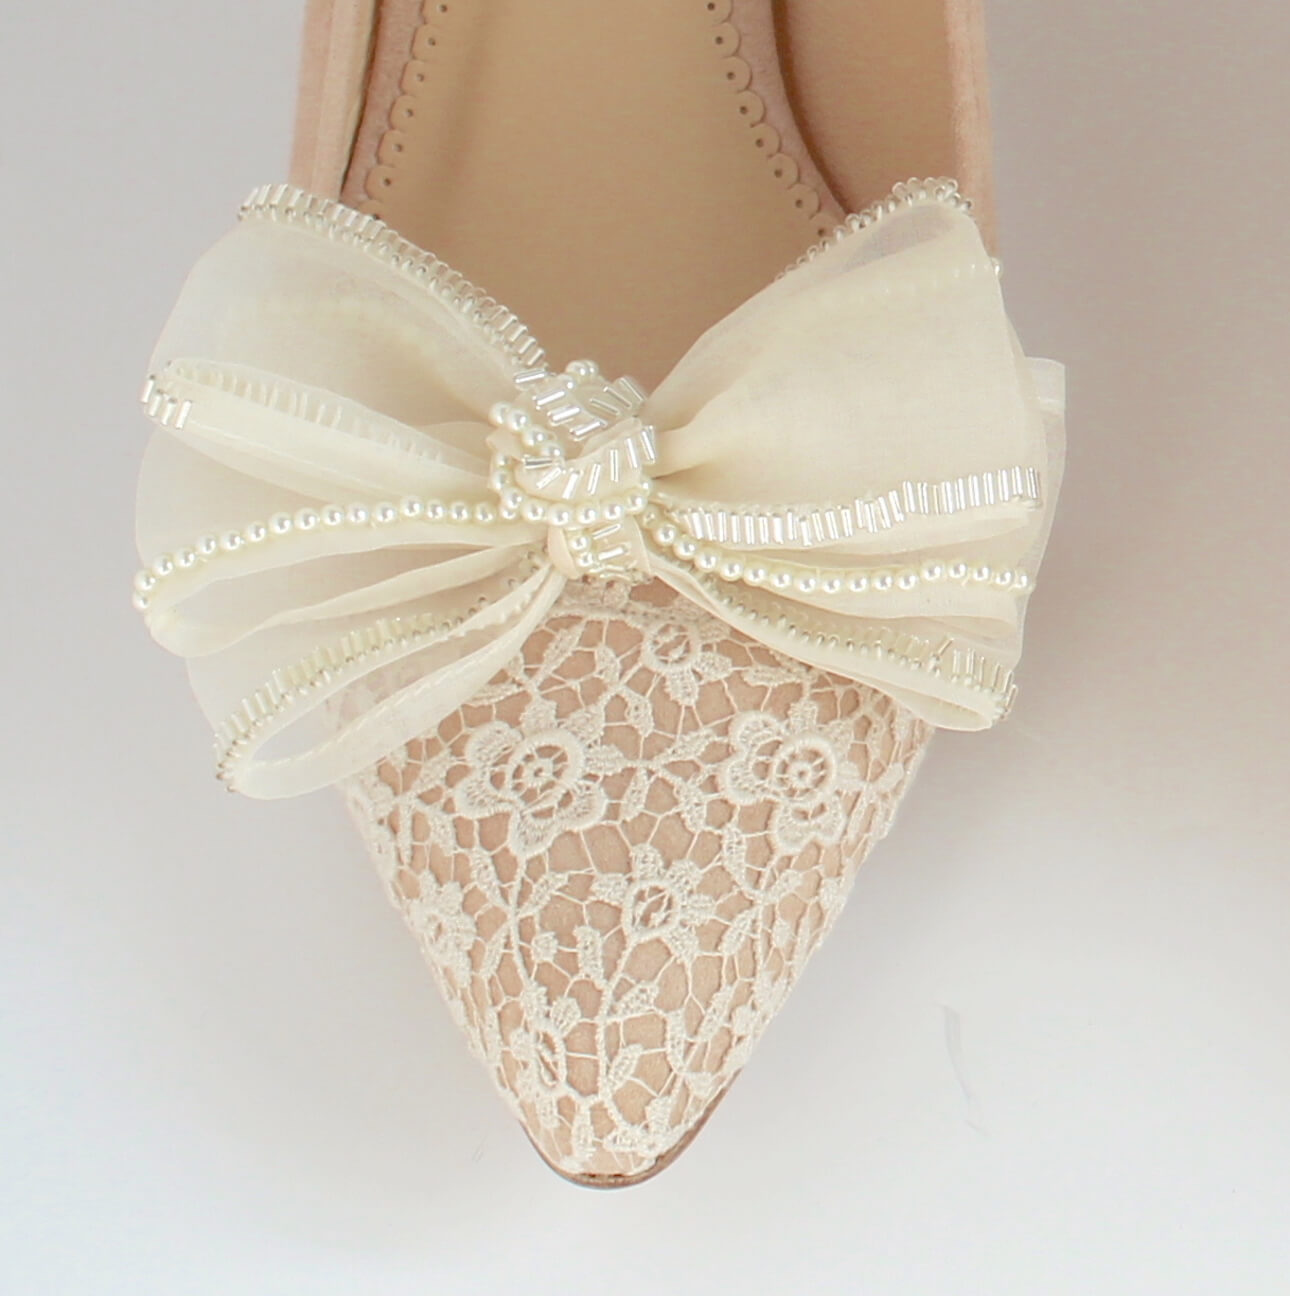 Willo suede shoe with beaded organza bow